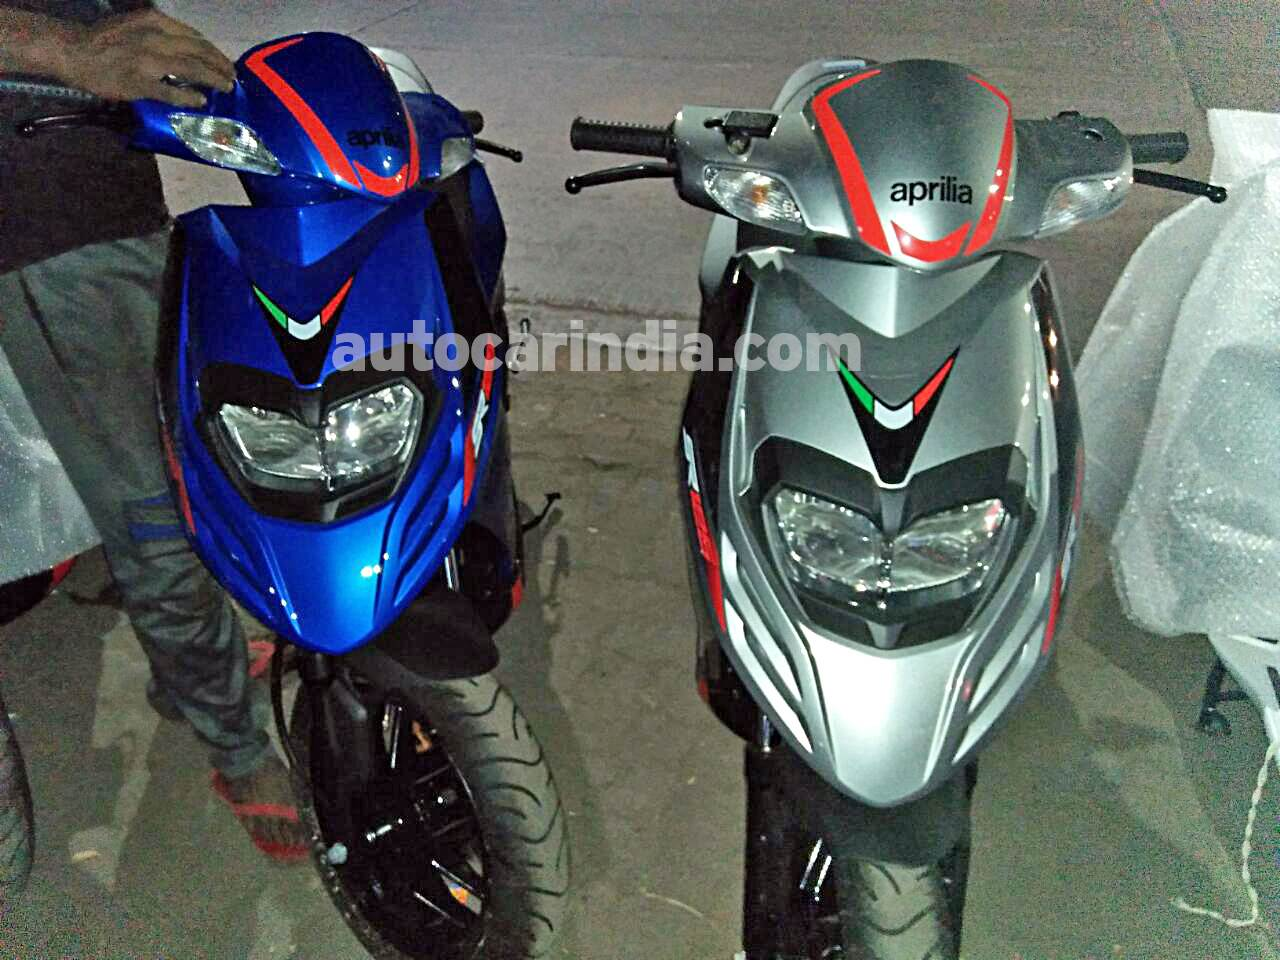 New Aprilia SR125 to be launched soon